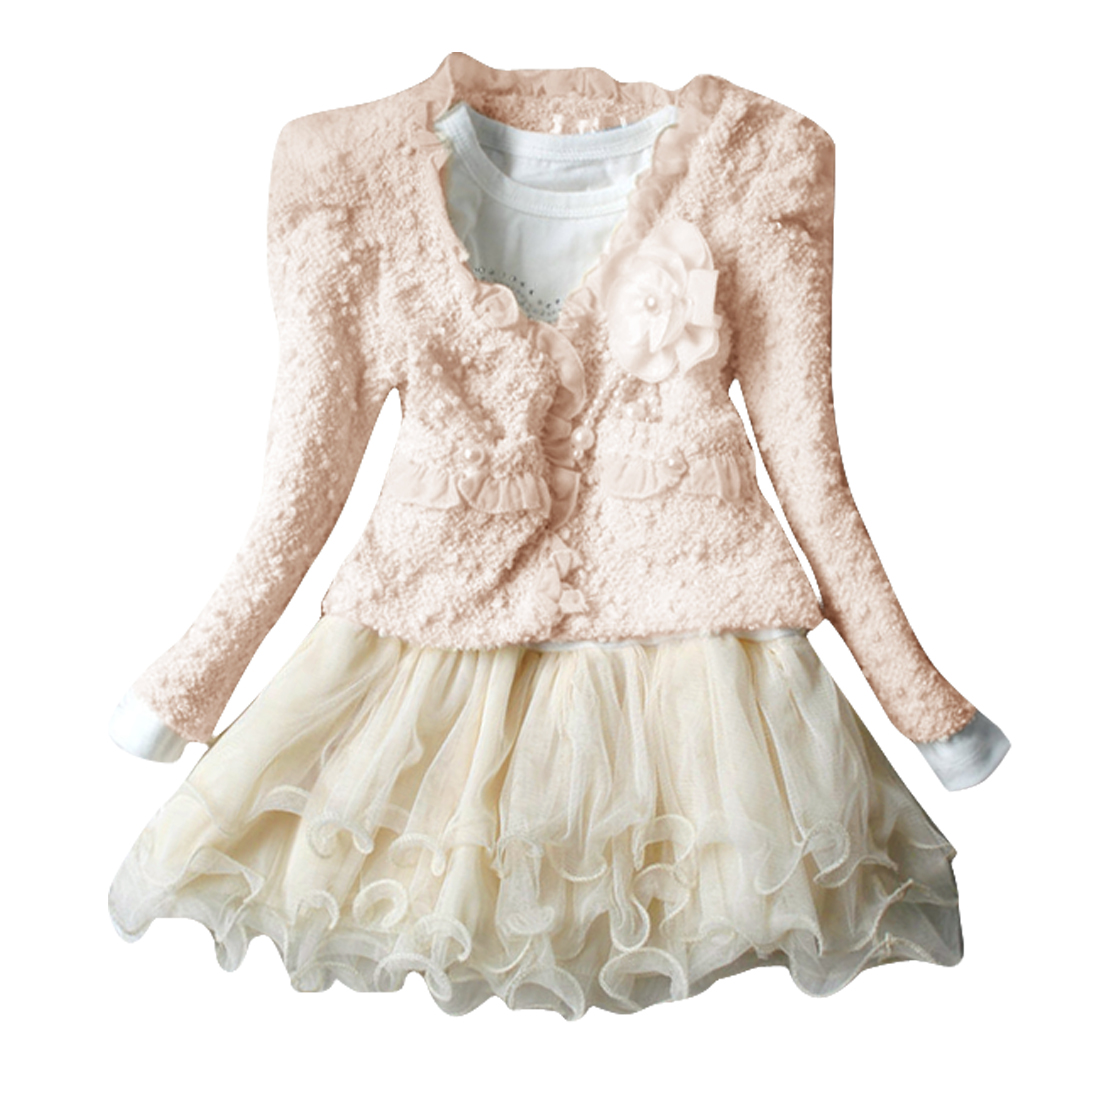 Beige 3T Front Pockets Scalloped Cardigan w Autumn Dress for Girls